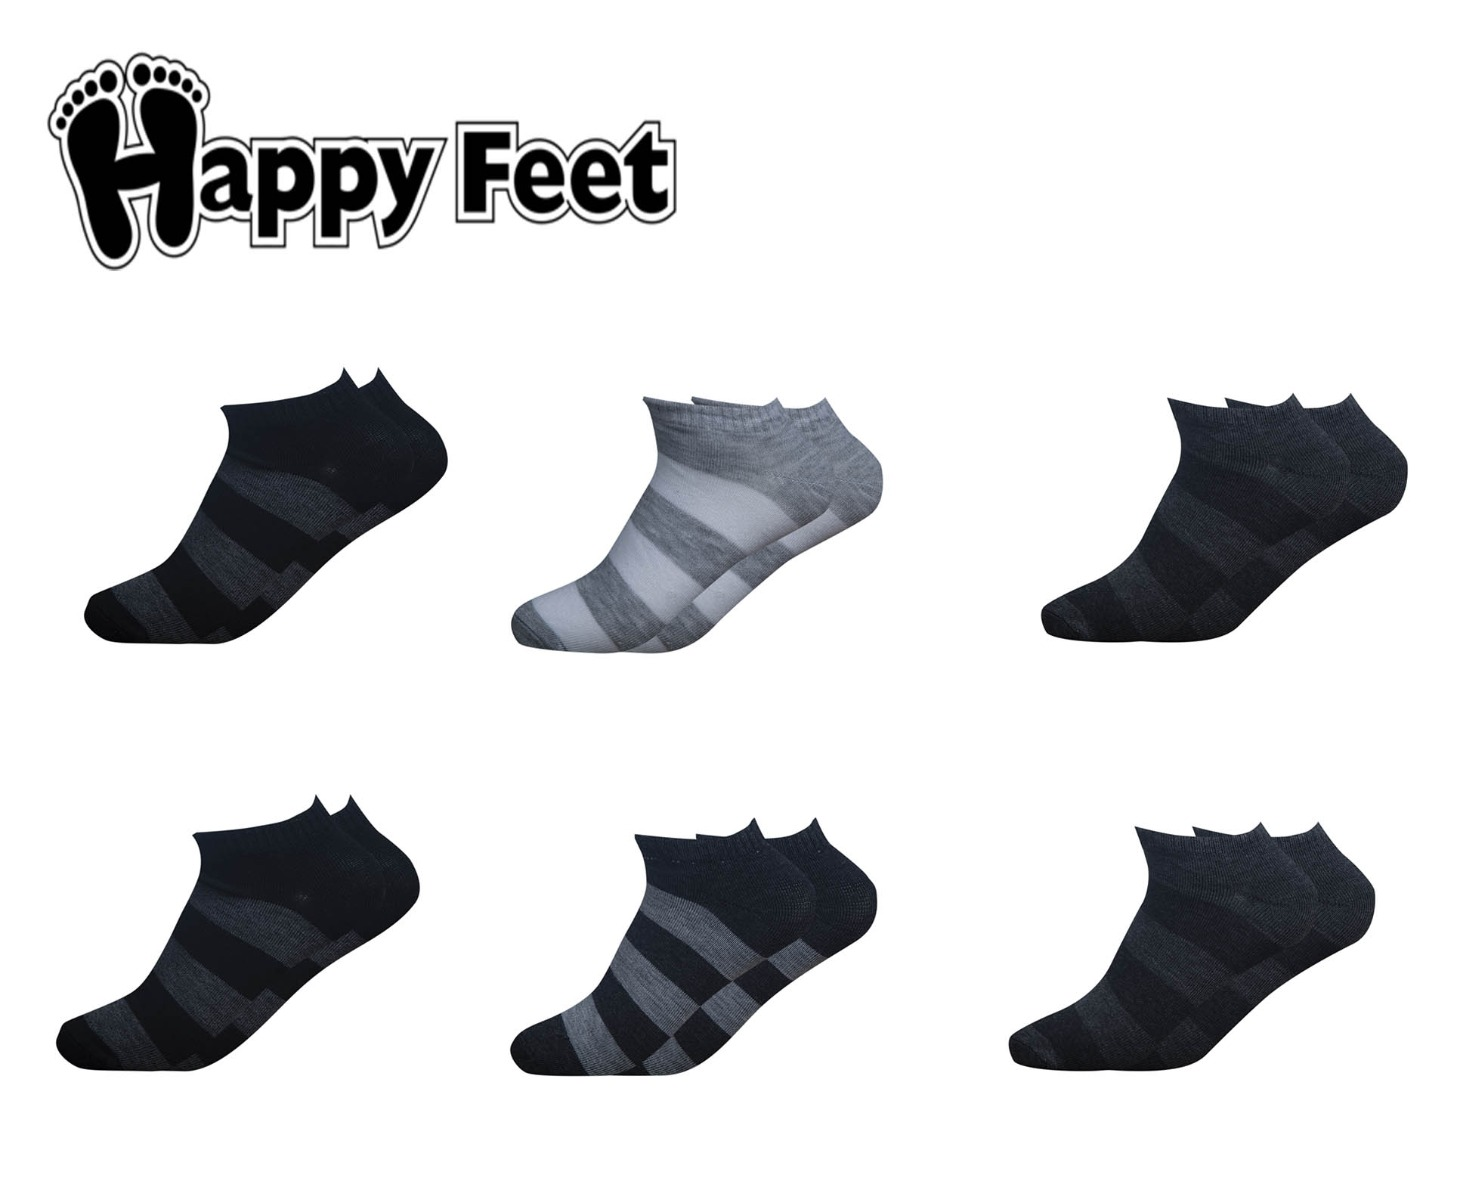 Happy Feet Pack of 6 Pairs of Striped Ankle Socks (1063)